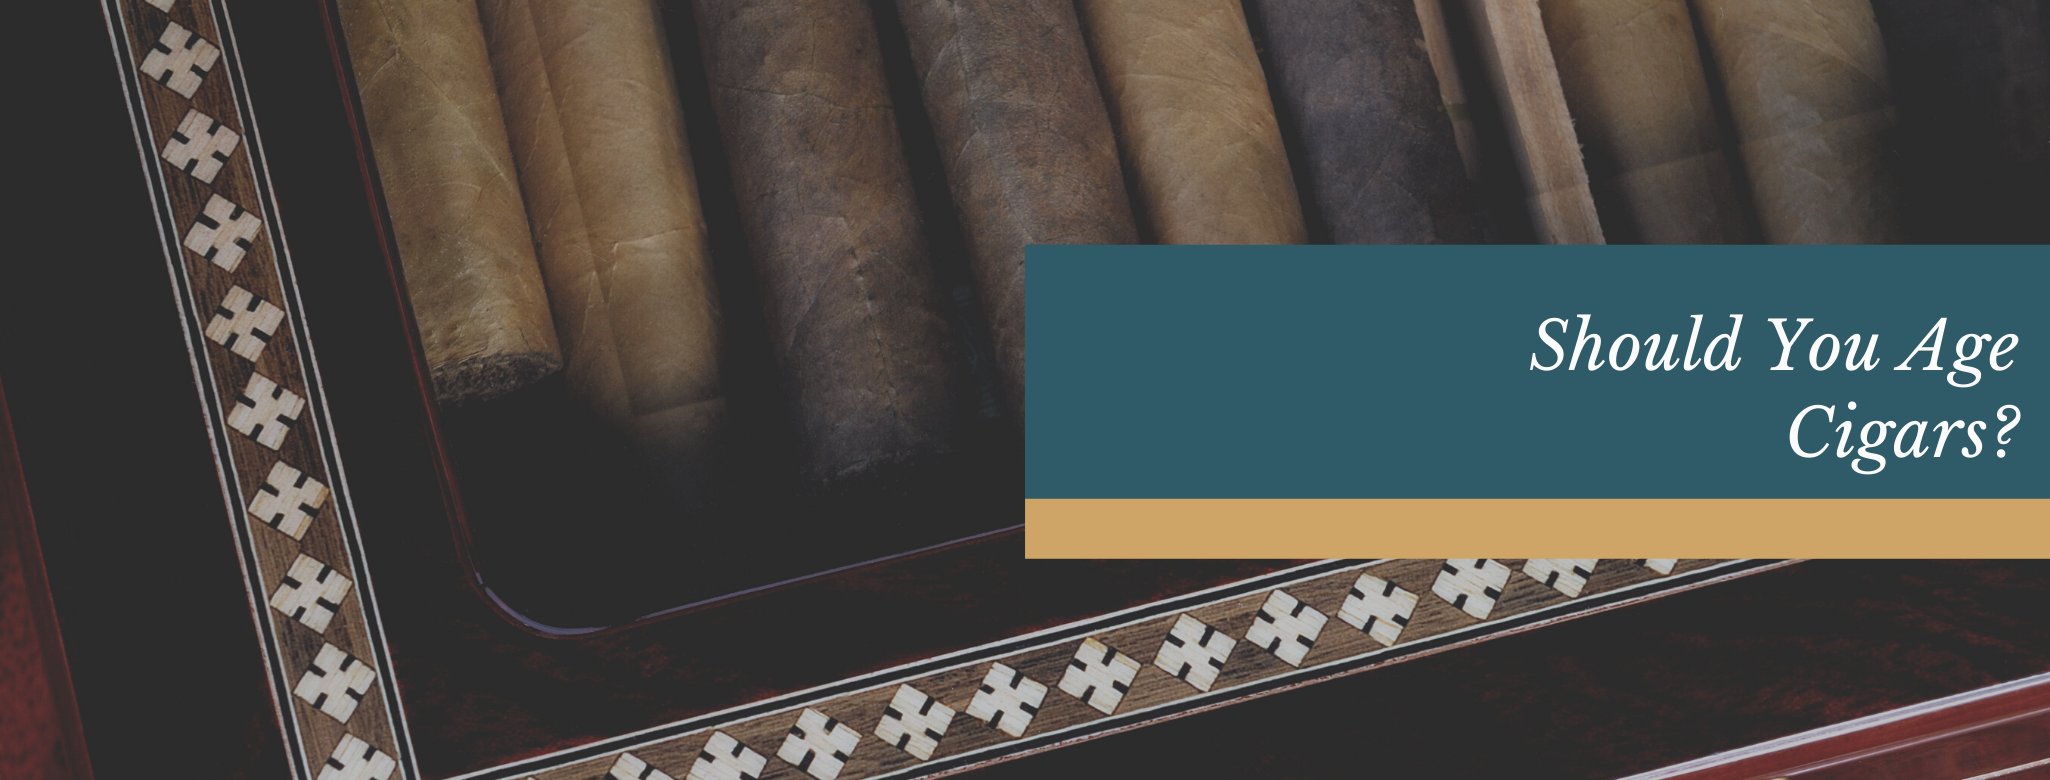 reads: should you age cigars?